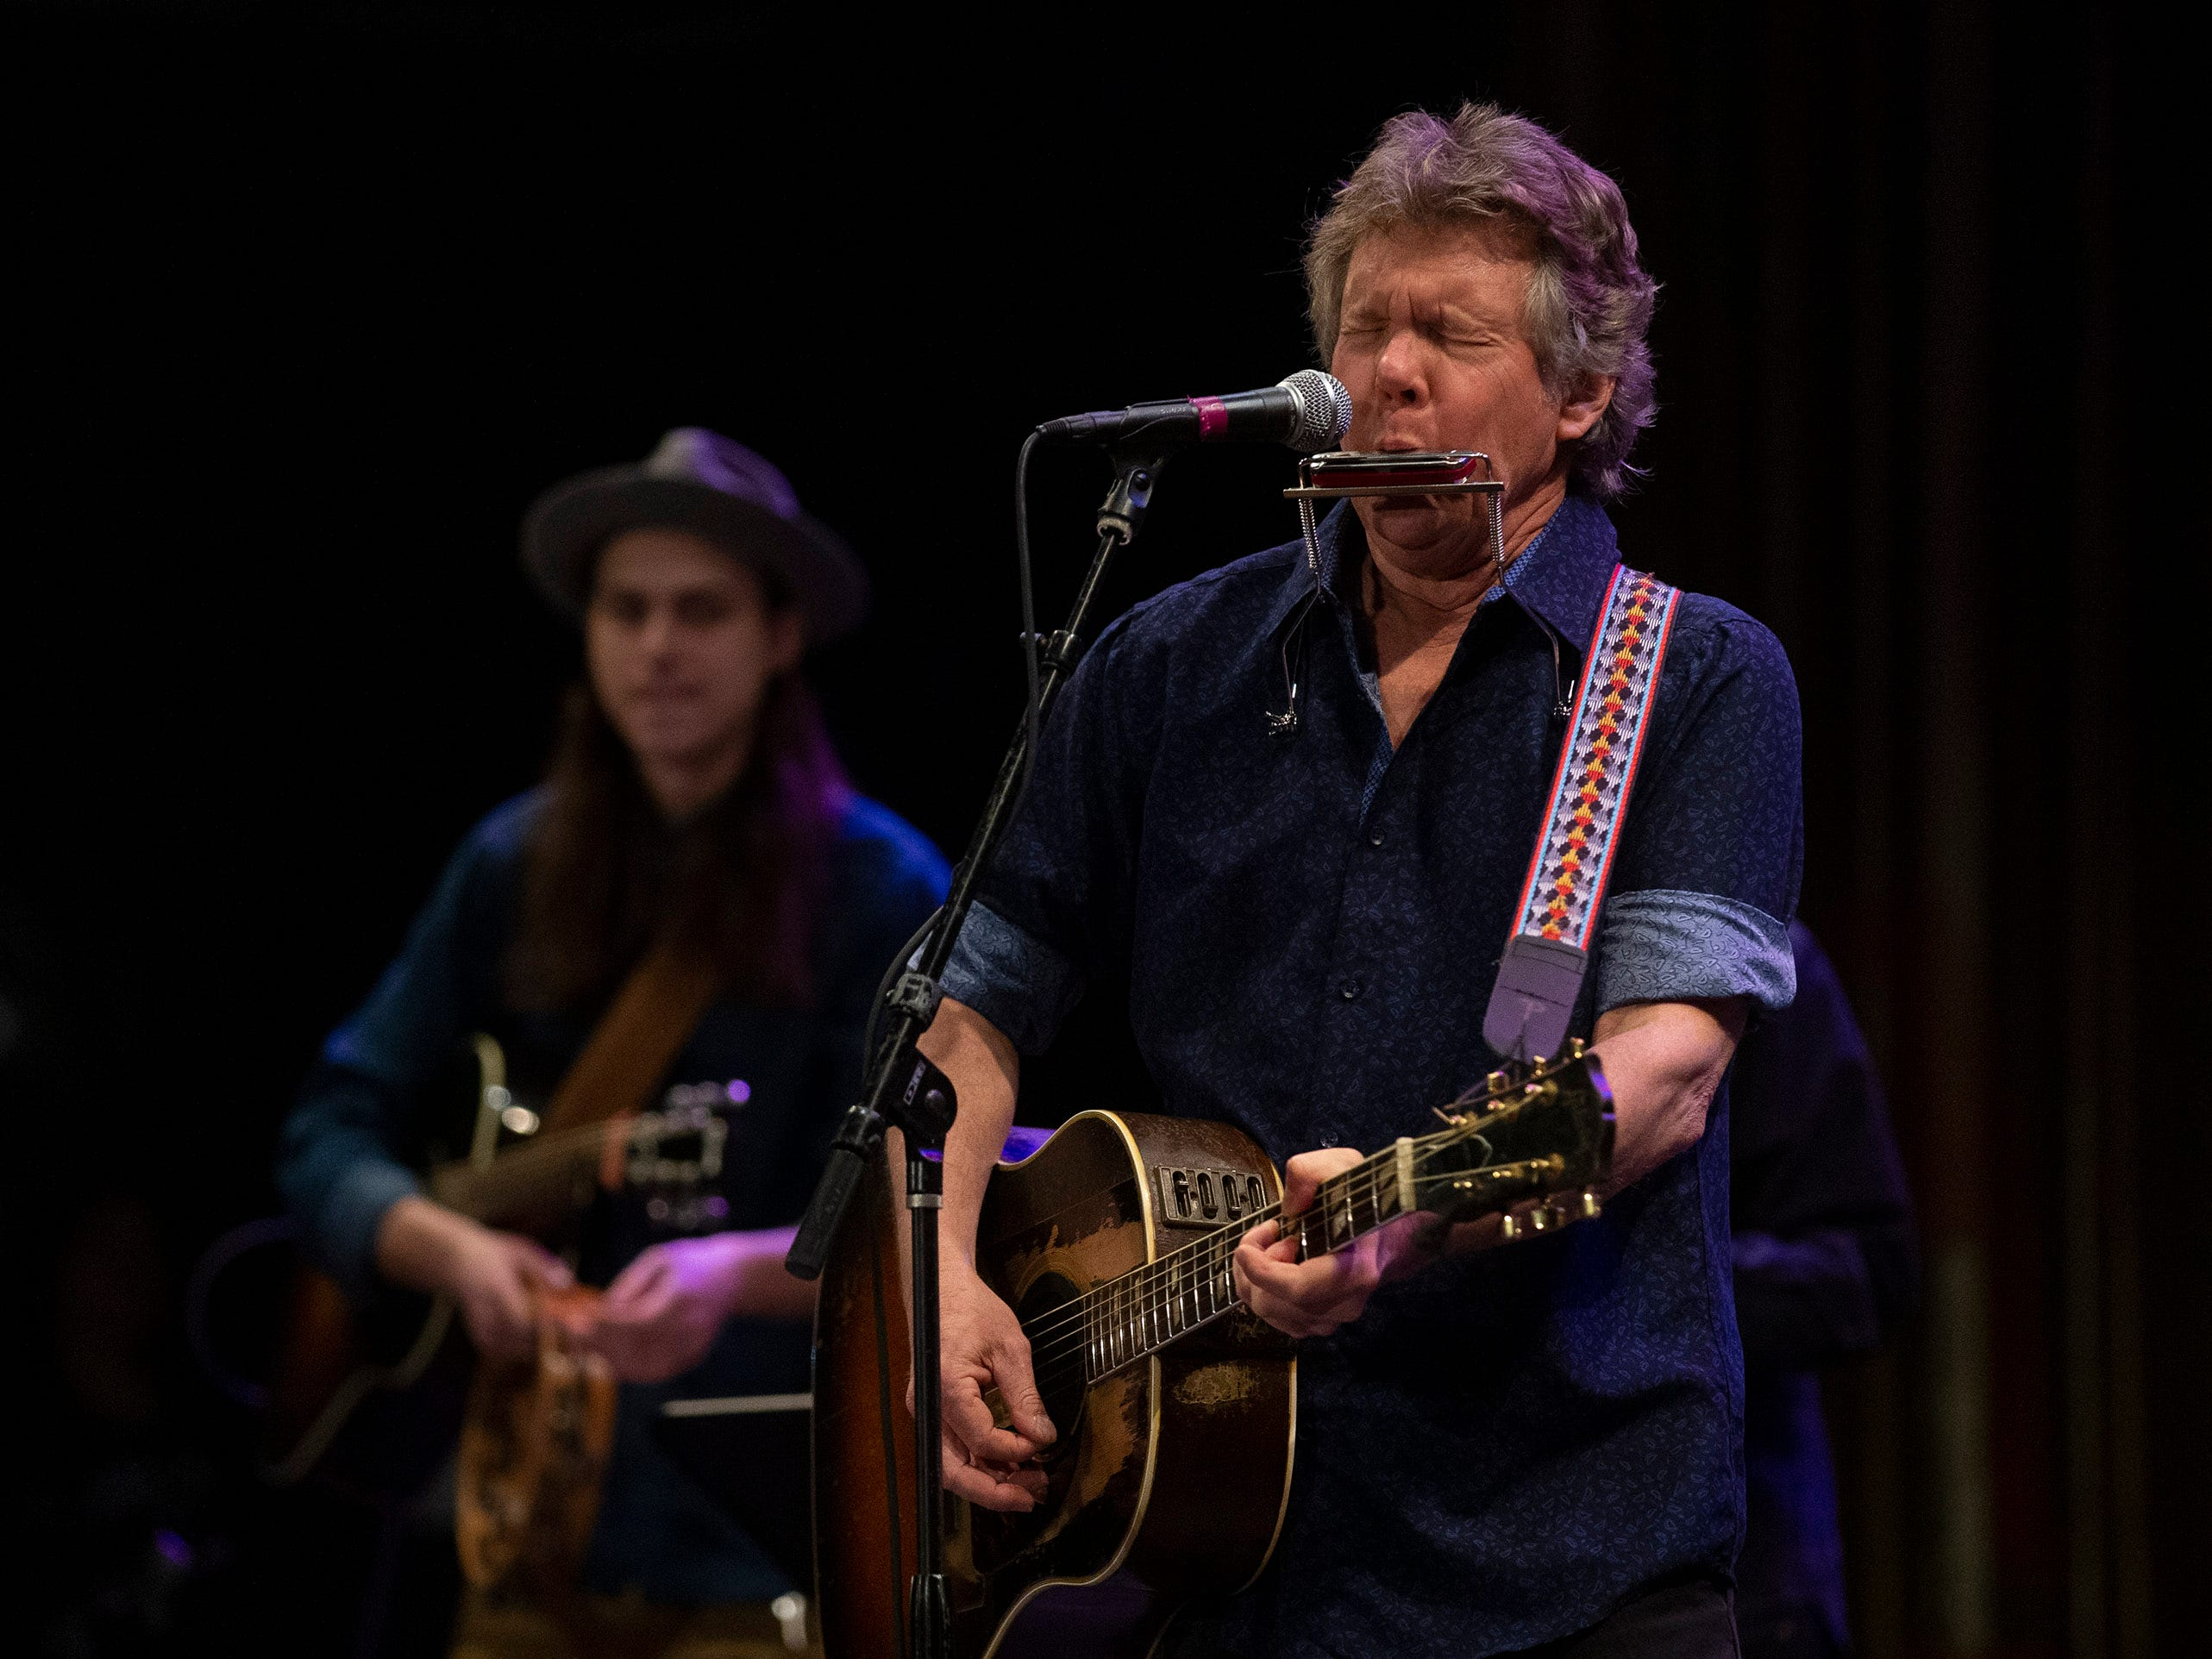 Steve Forbert performs at Bob's Birthday Bash at the Paramount Theatre. Performer scheduled to perform included Willie Nile, Joe Grushecky & The Houserockers, Jesse Malin, Low Cut Connie, Steve Forbert & The Renditions, James Maddock, John Eddie & His Dirty Ol' Band, Joe D'Urso & Stone Caravan, Dean Friedman, Ben Arnold.